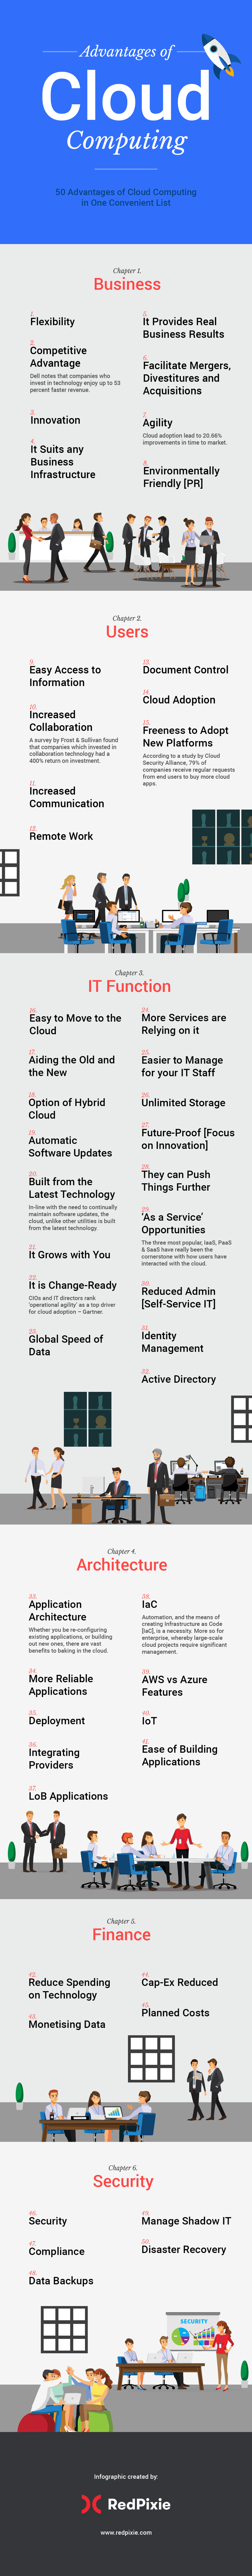 advantages of cloud computing infographic.png